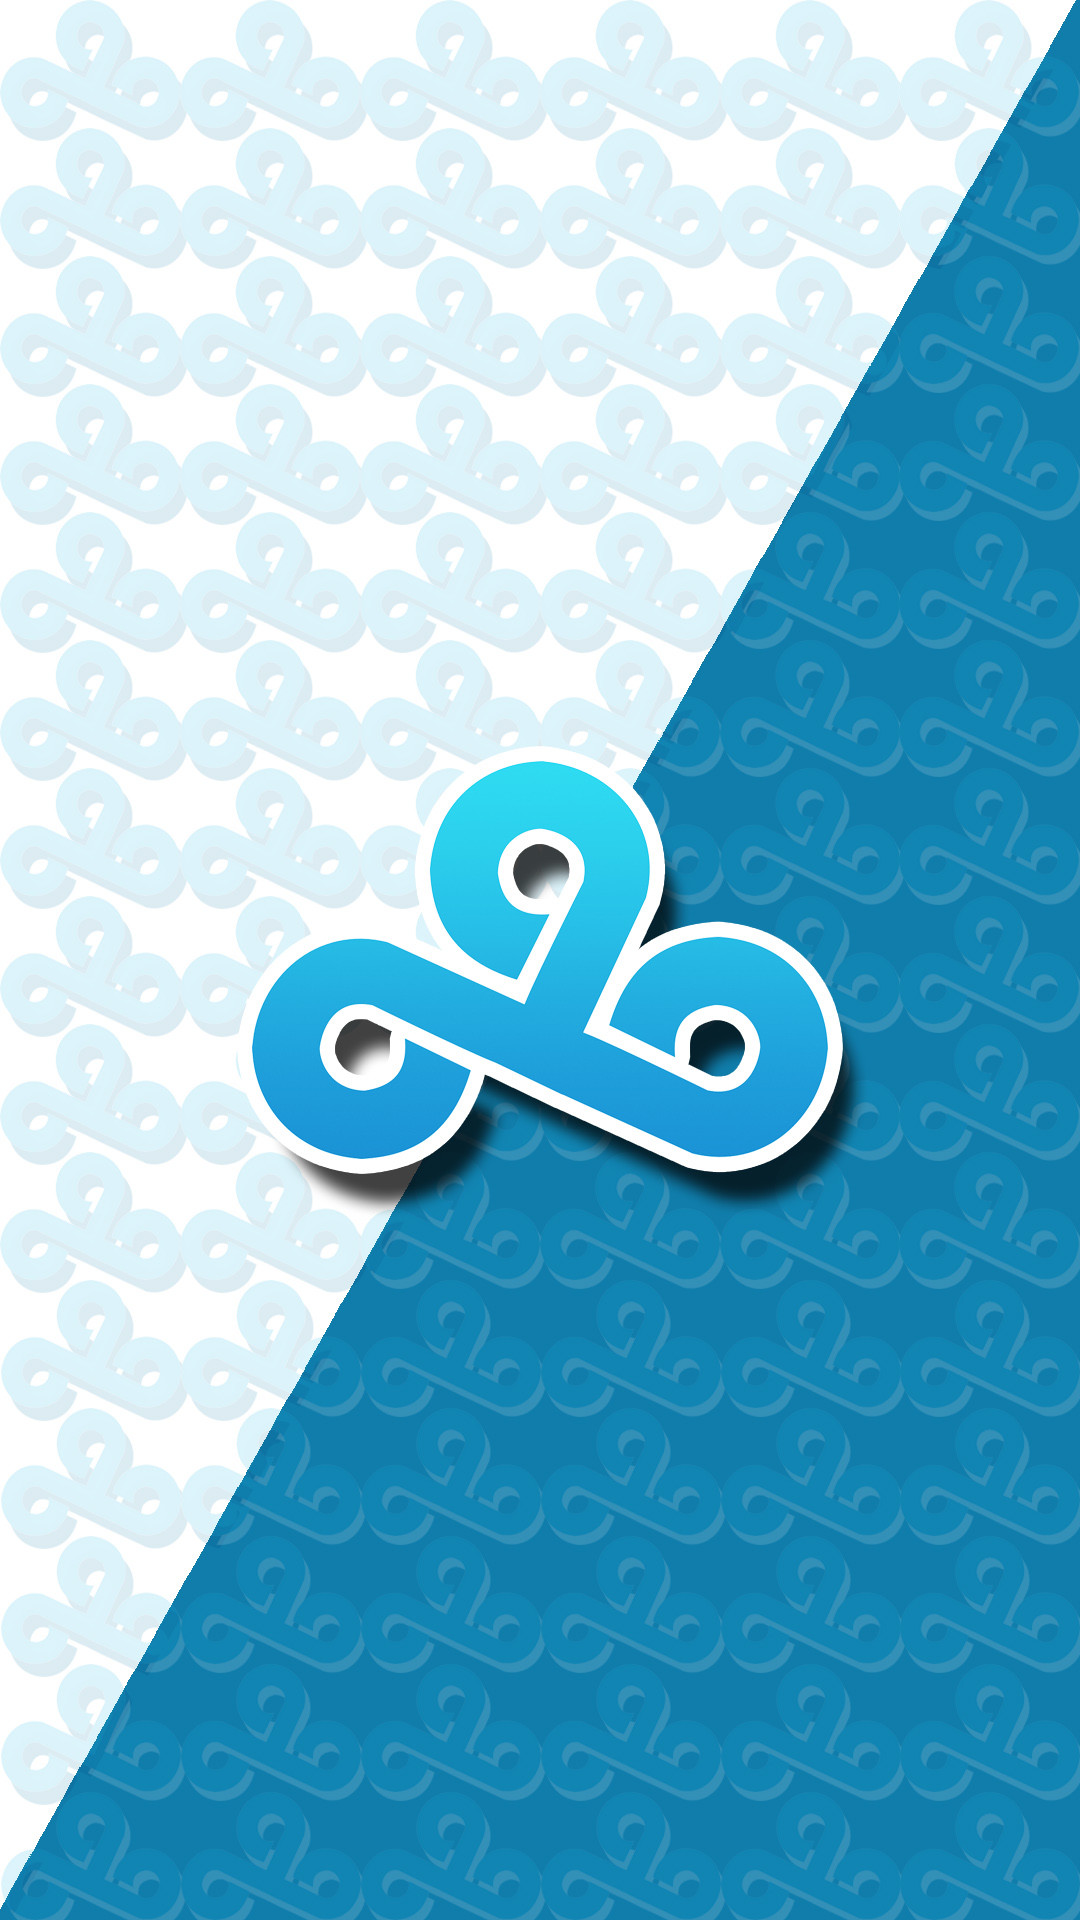 So in celebration of Cloud9 Winning i created a phone wallpaper :) tell me  what